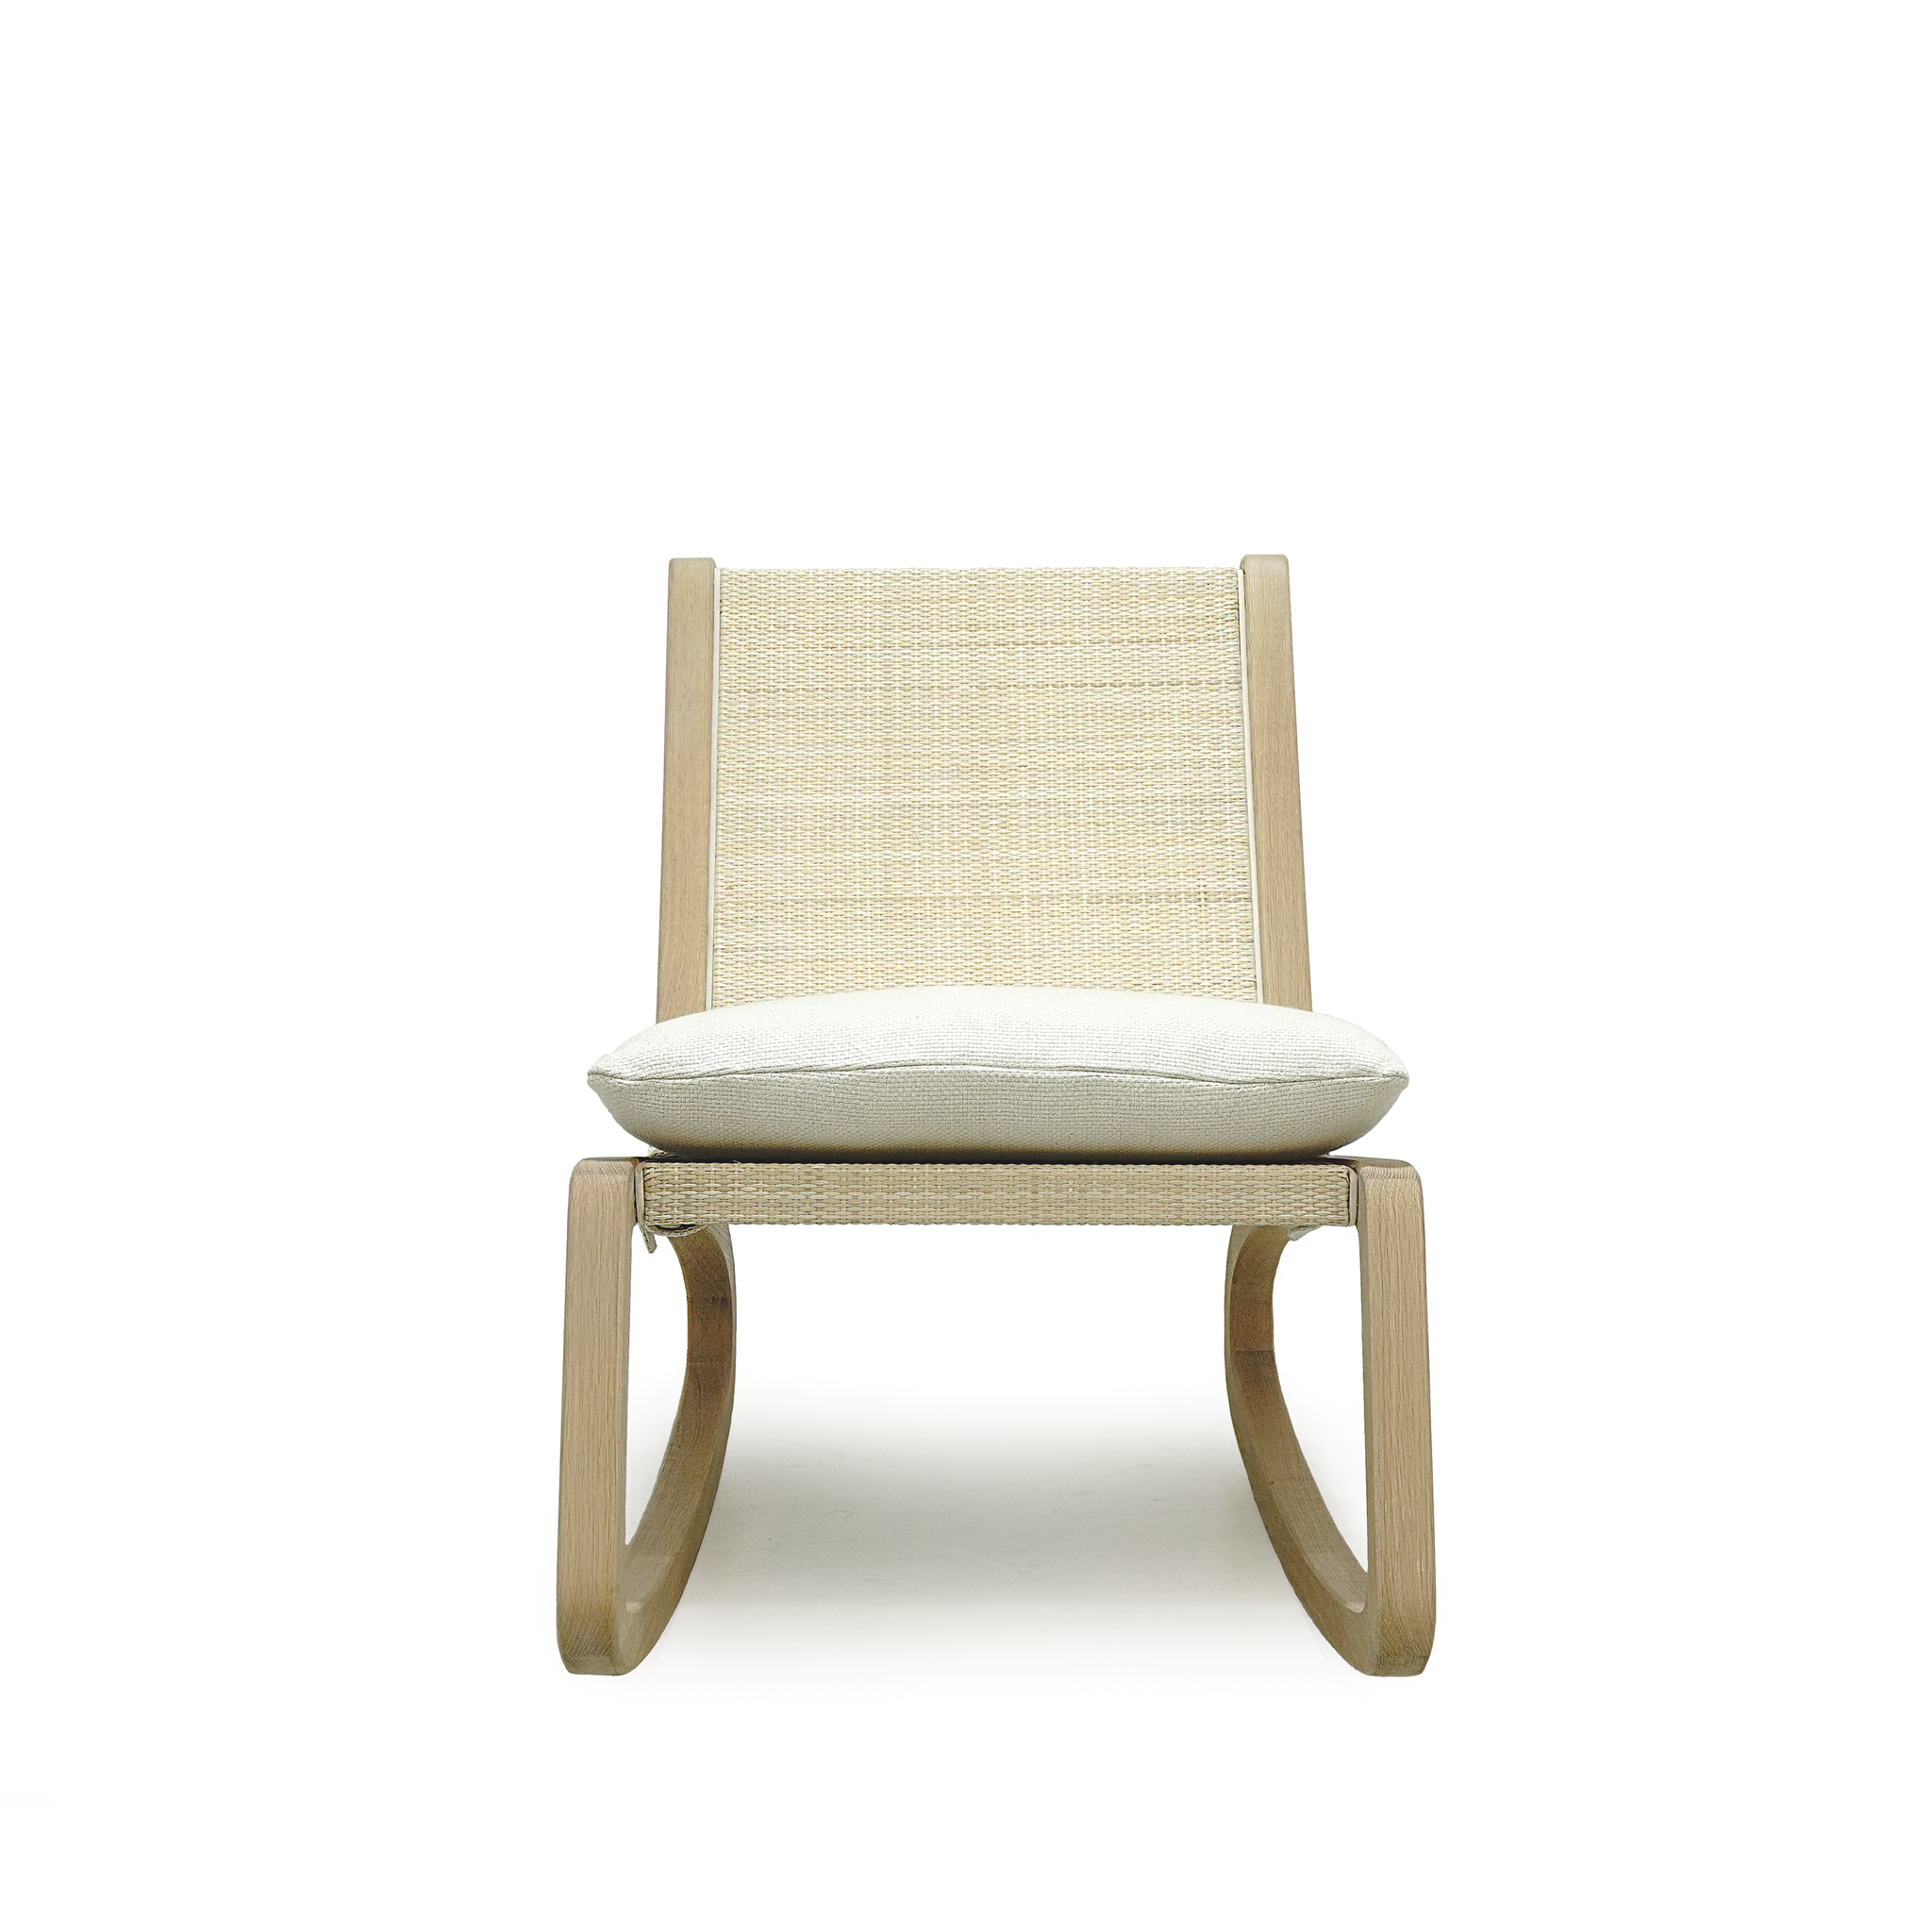 Shown in Natural Cane, cushion in Monte Natural